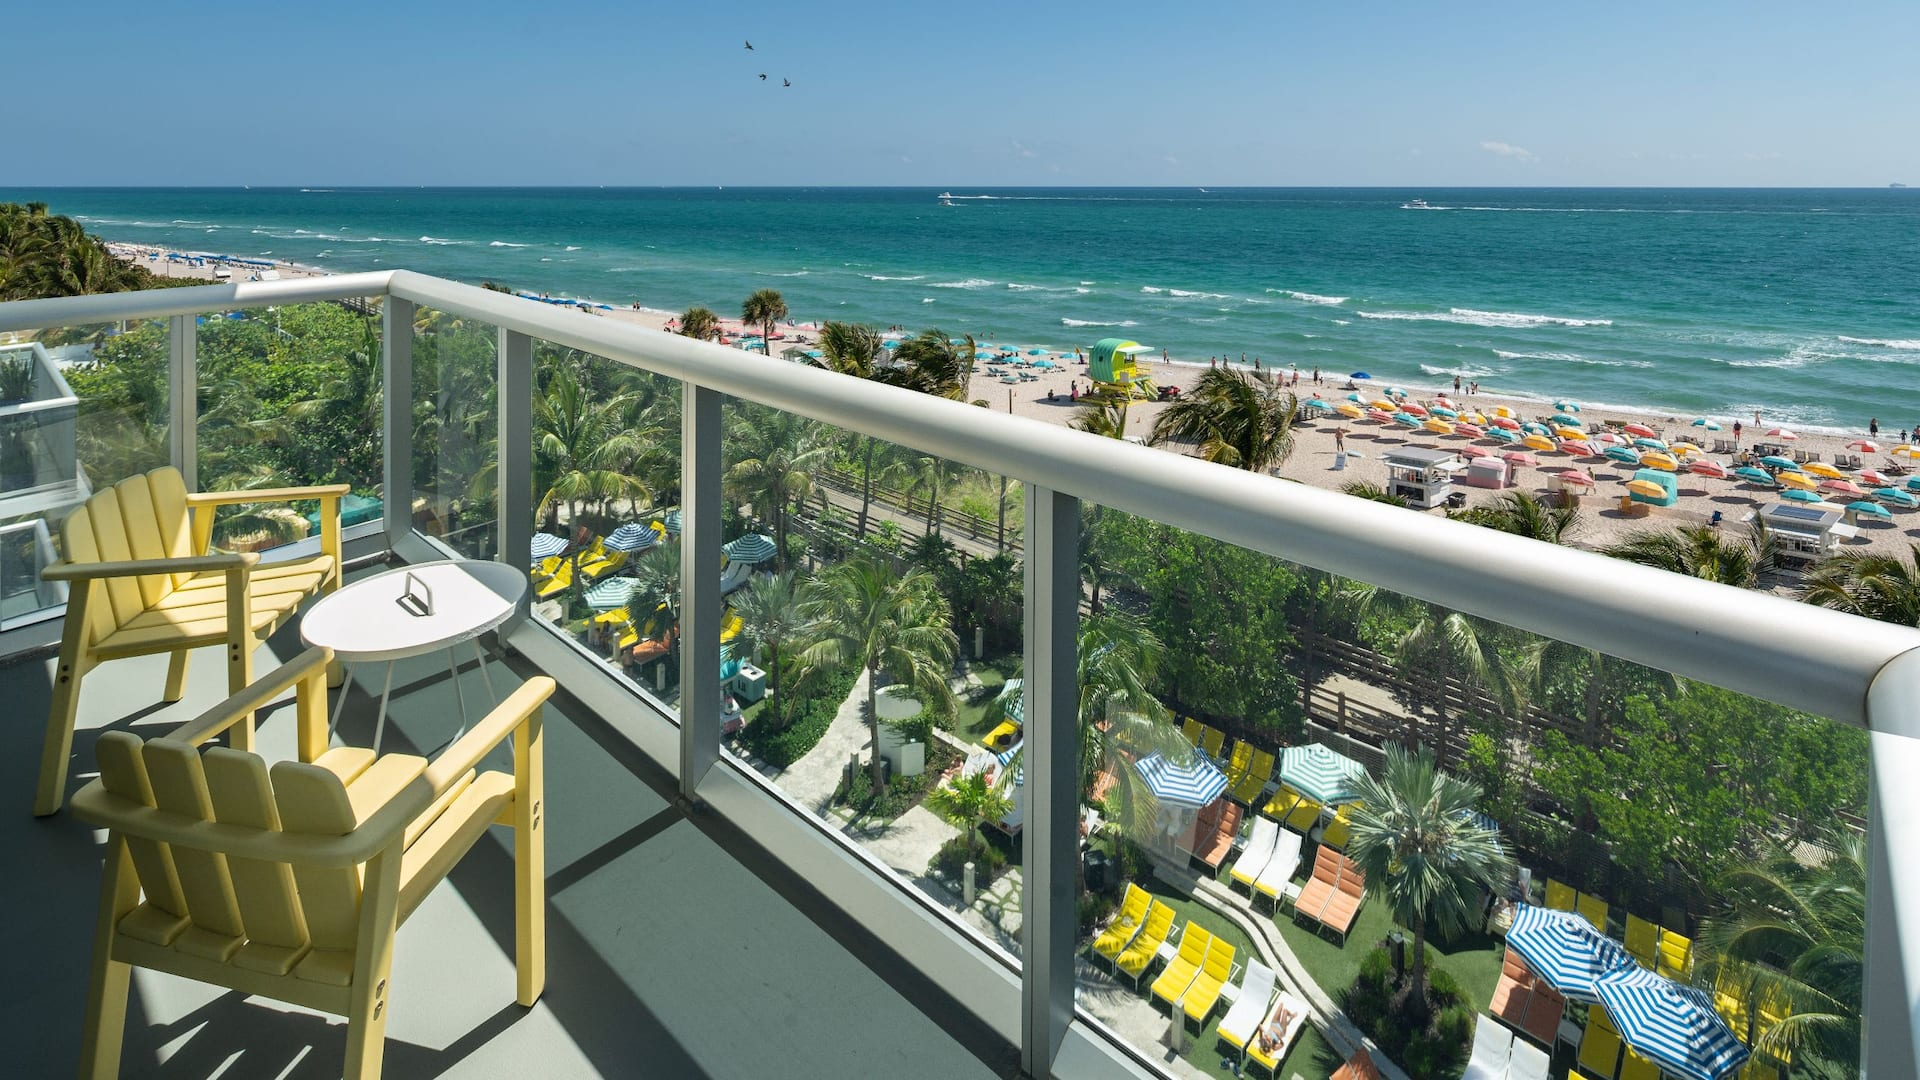 Oceanfront hotel balcony in Miami Beach